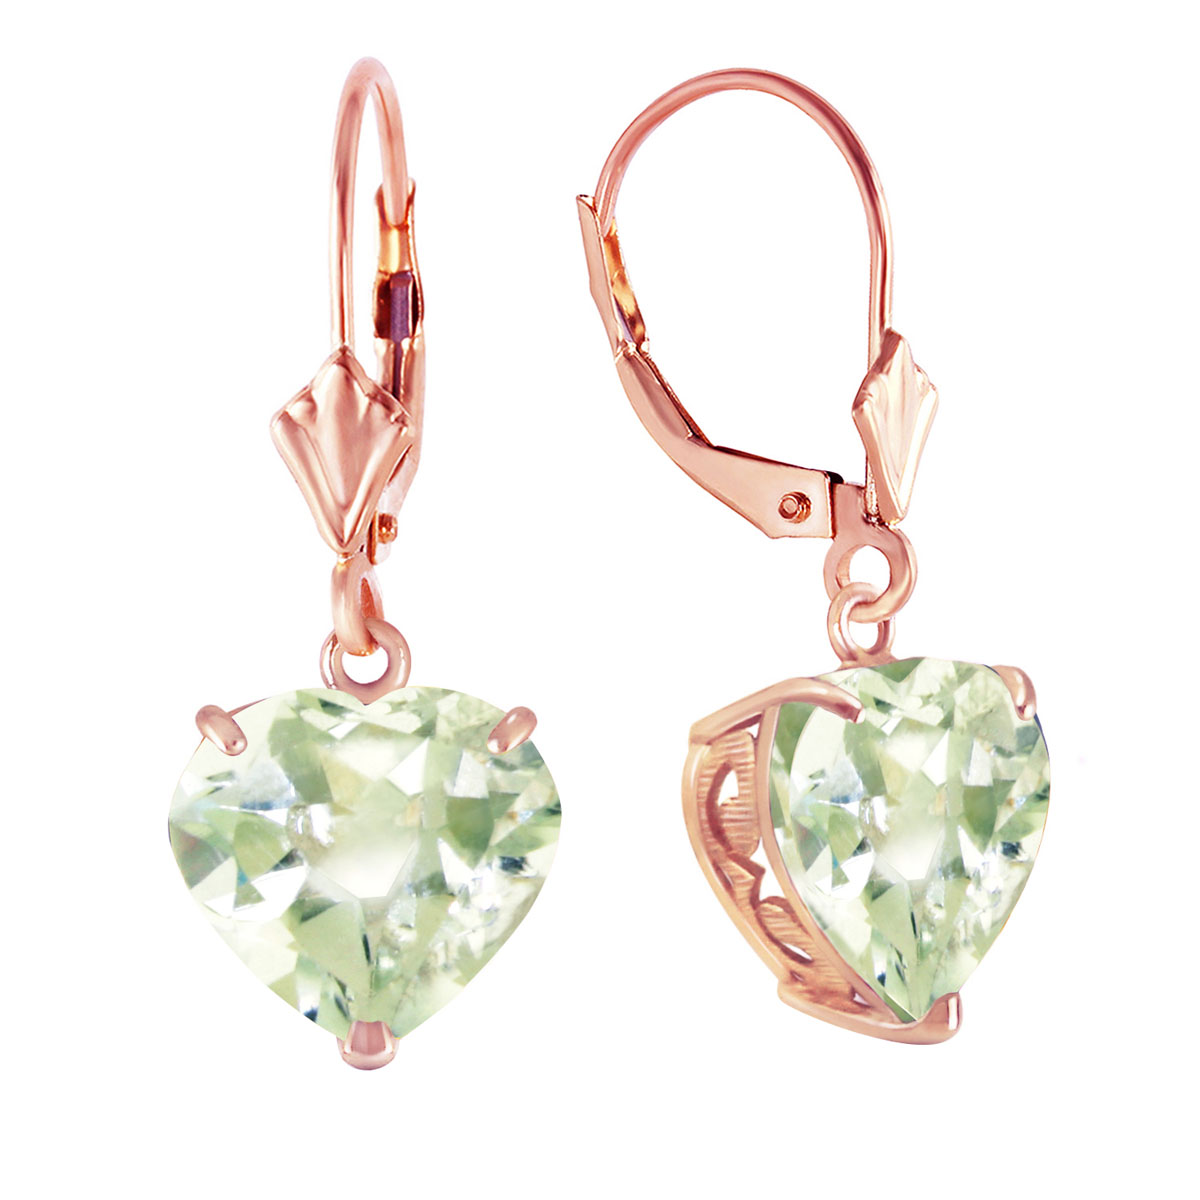 Green Amethyst Large Heart Earrings 6.2 ctw in 9ct Rose Gold